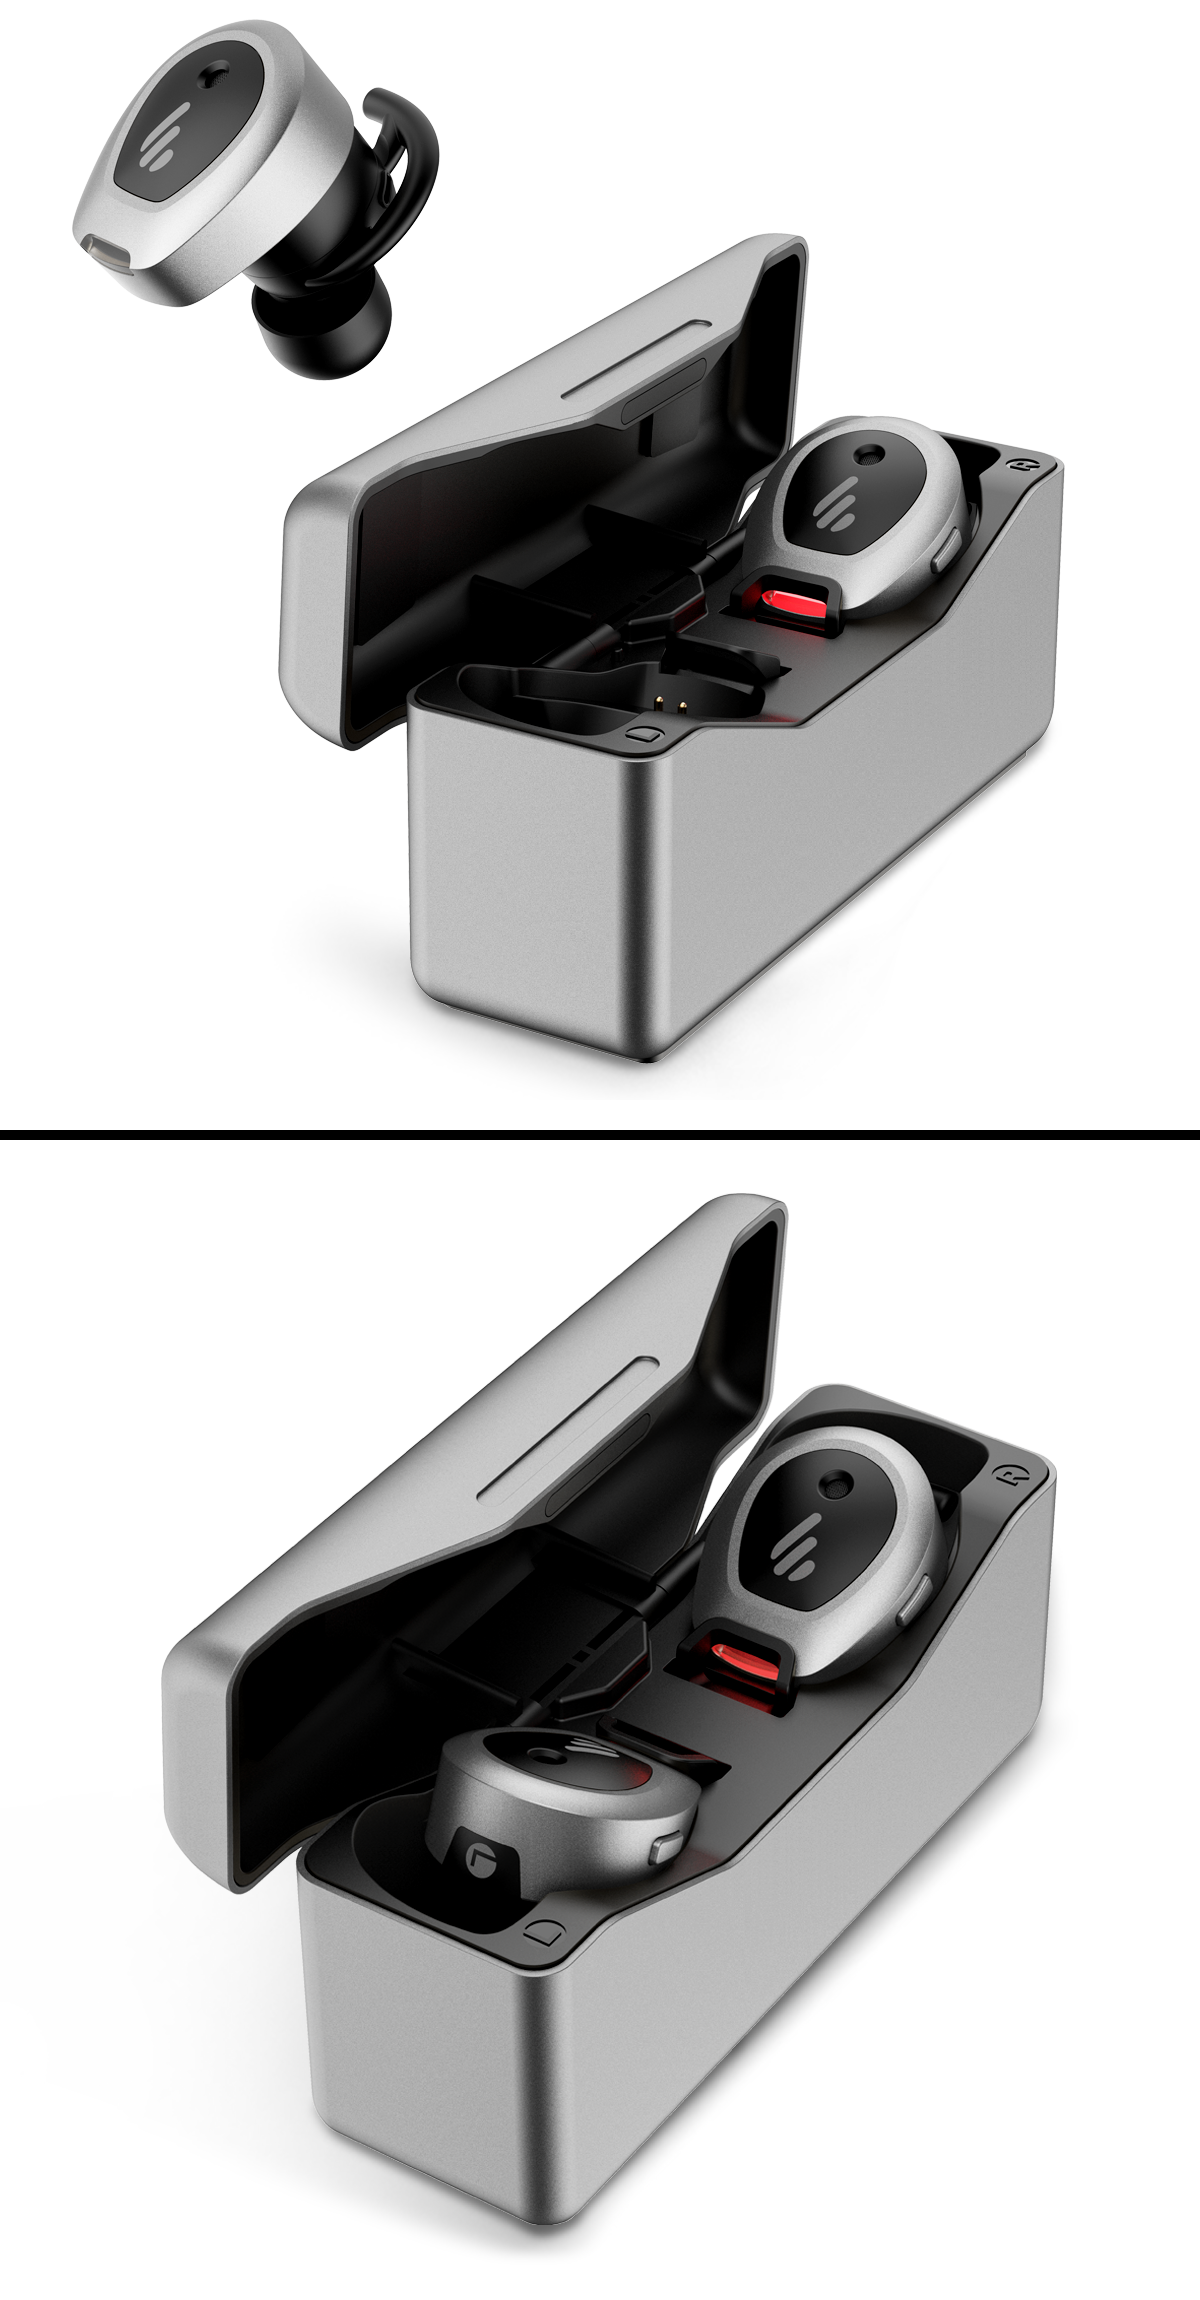 Carrying/Wireless Charging Case